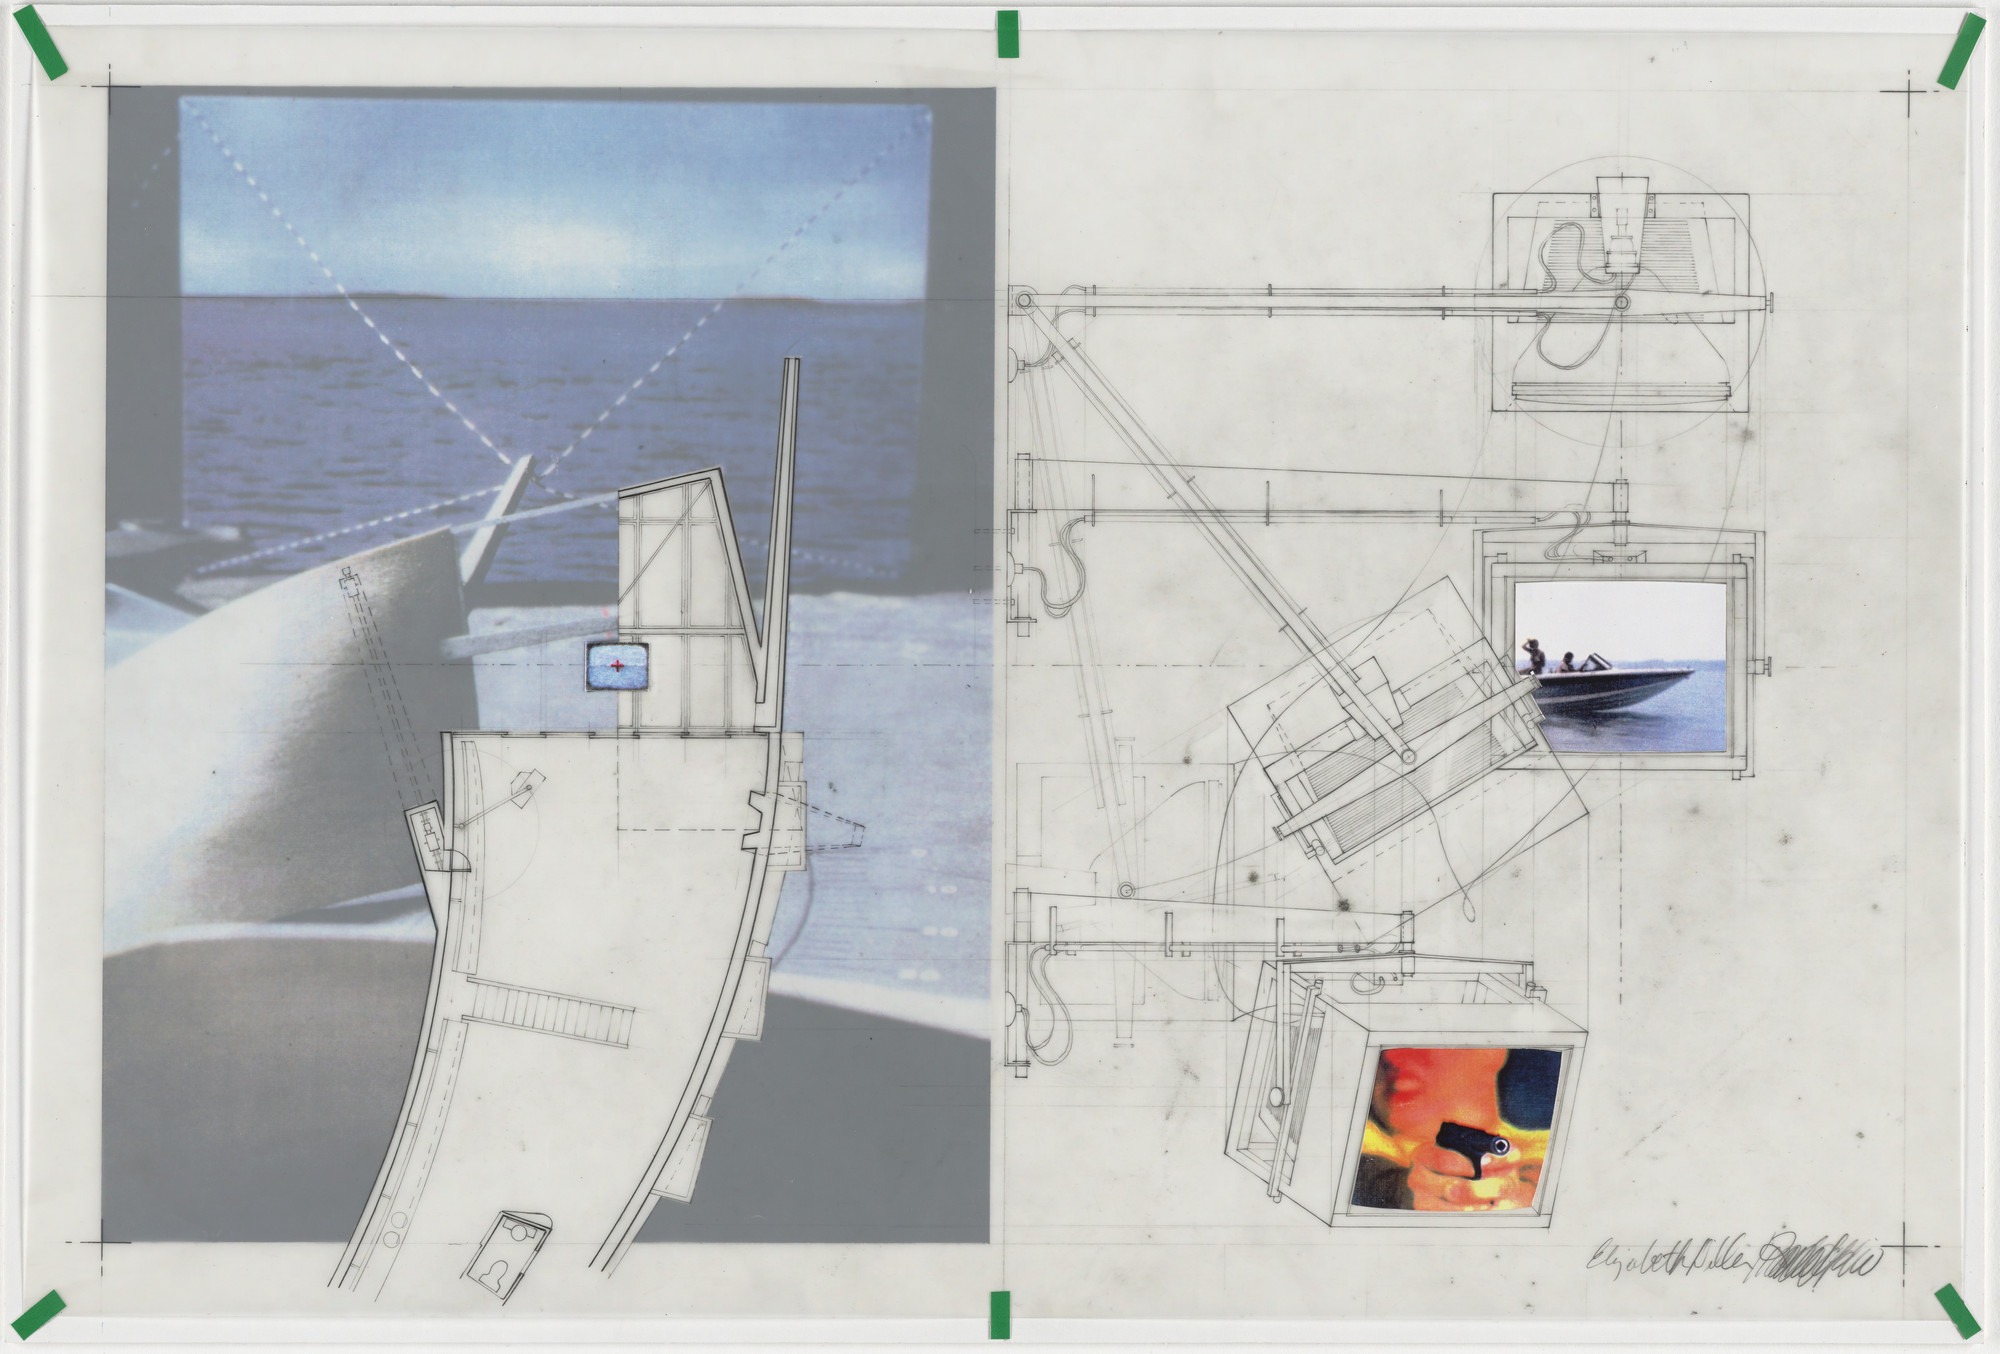 Diller + Scofidio, Elizabeth Diller, Ricardo Scofidio. Slow House Project, North Haven, Long Island, New York, Perspective and plans of TV in Picture Window Apparatus,. 1991